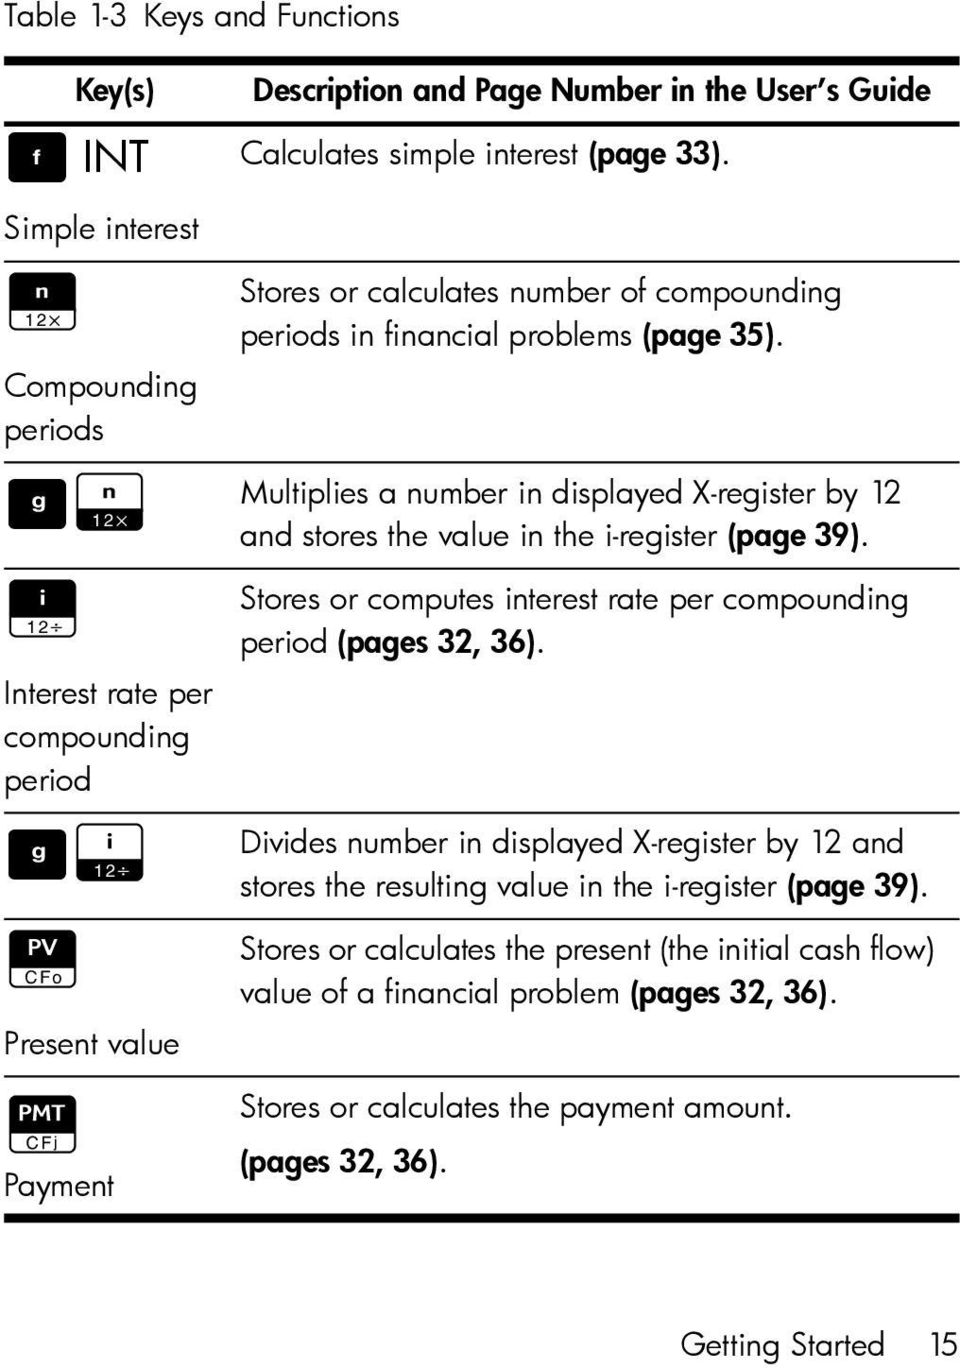 Multiplies a number in displayed X-register by 12 and stores the value in the i-register (page 39). Stores or computes interest rate per compounding period (pages 32, 36).